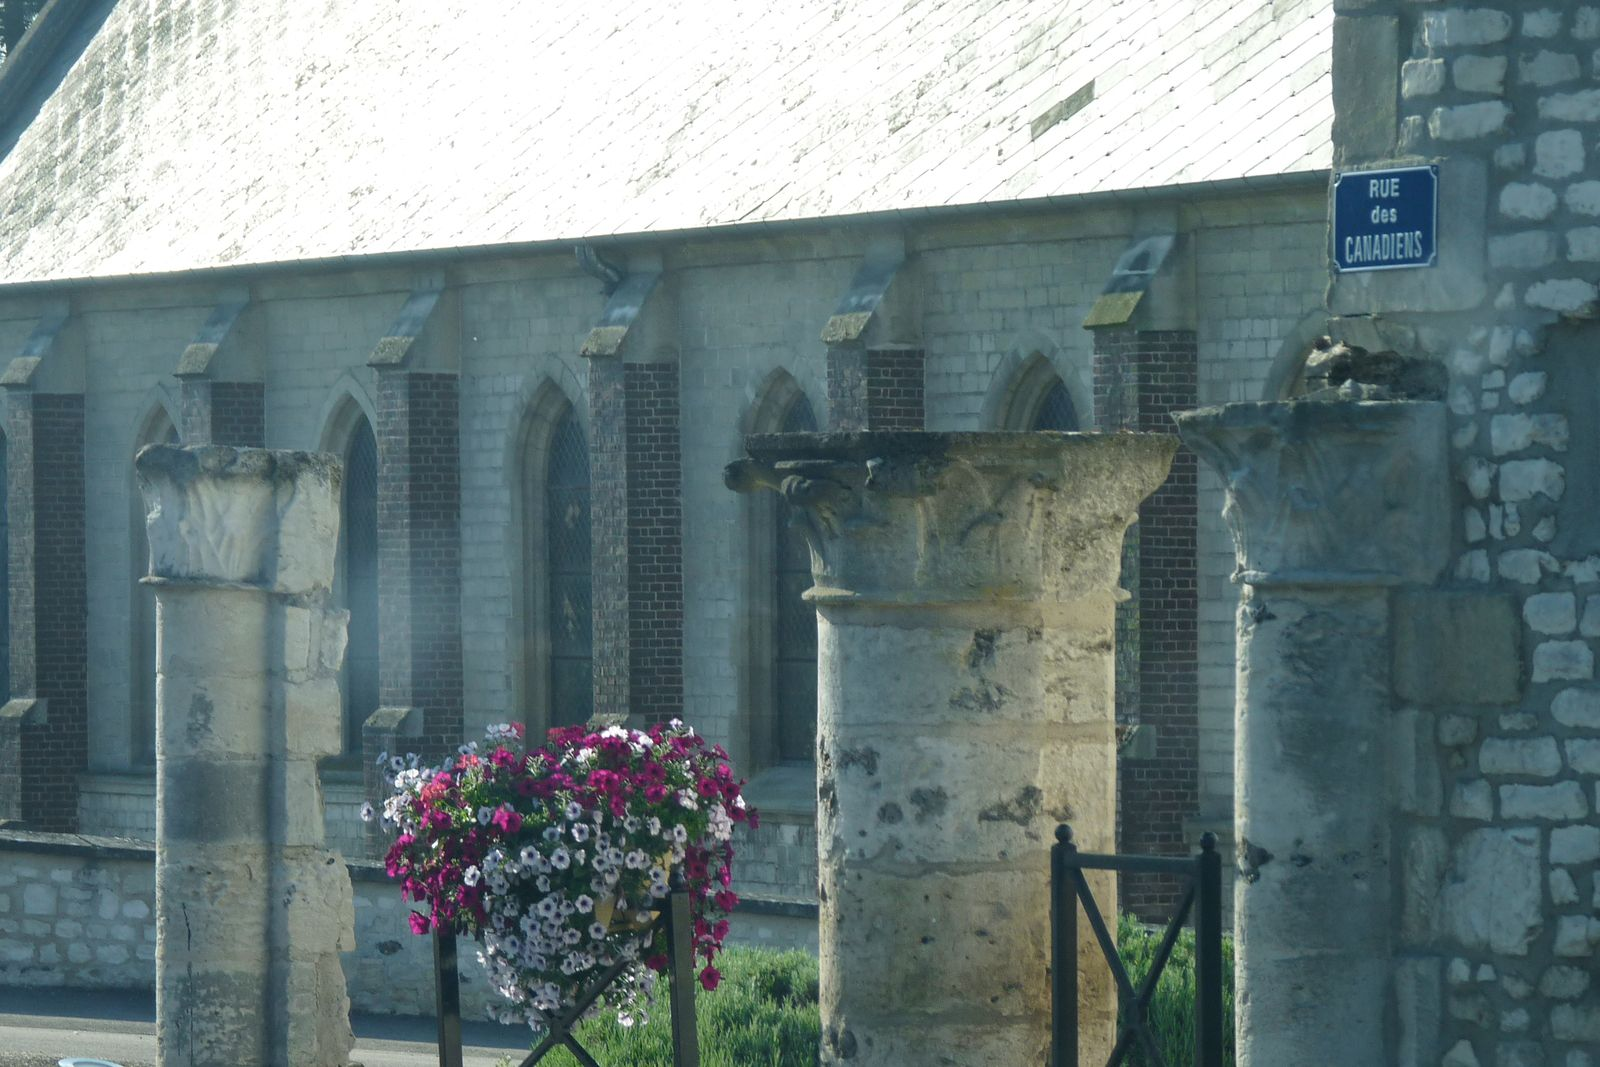 Les colonnes en question devant l'église Saint-Baudile (cliché d'Armand Launay, juin 2012).